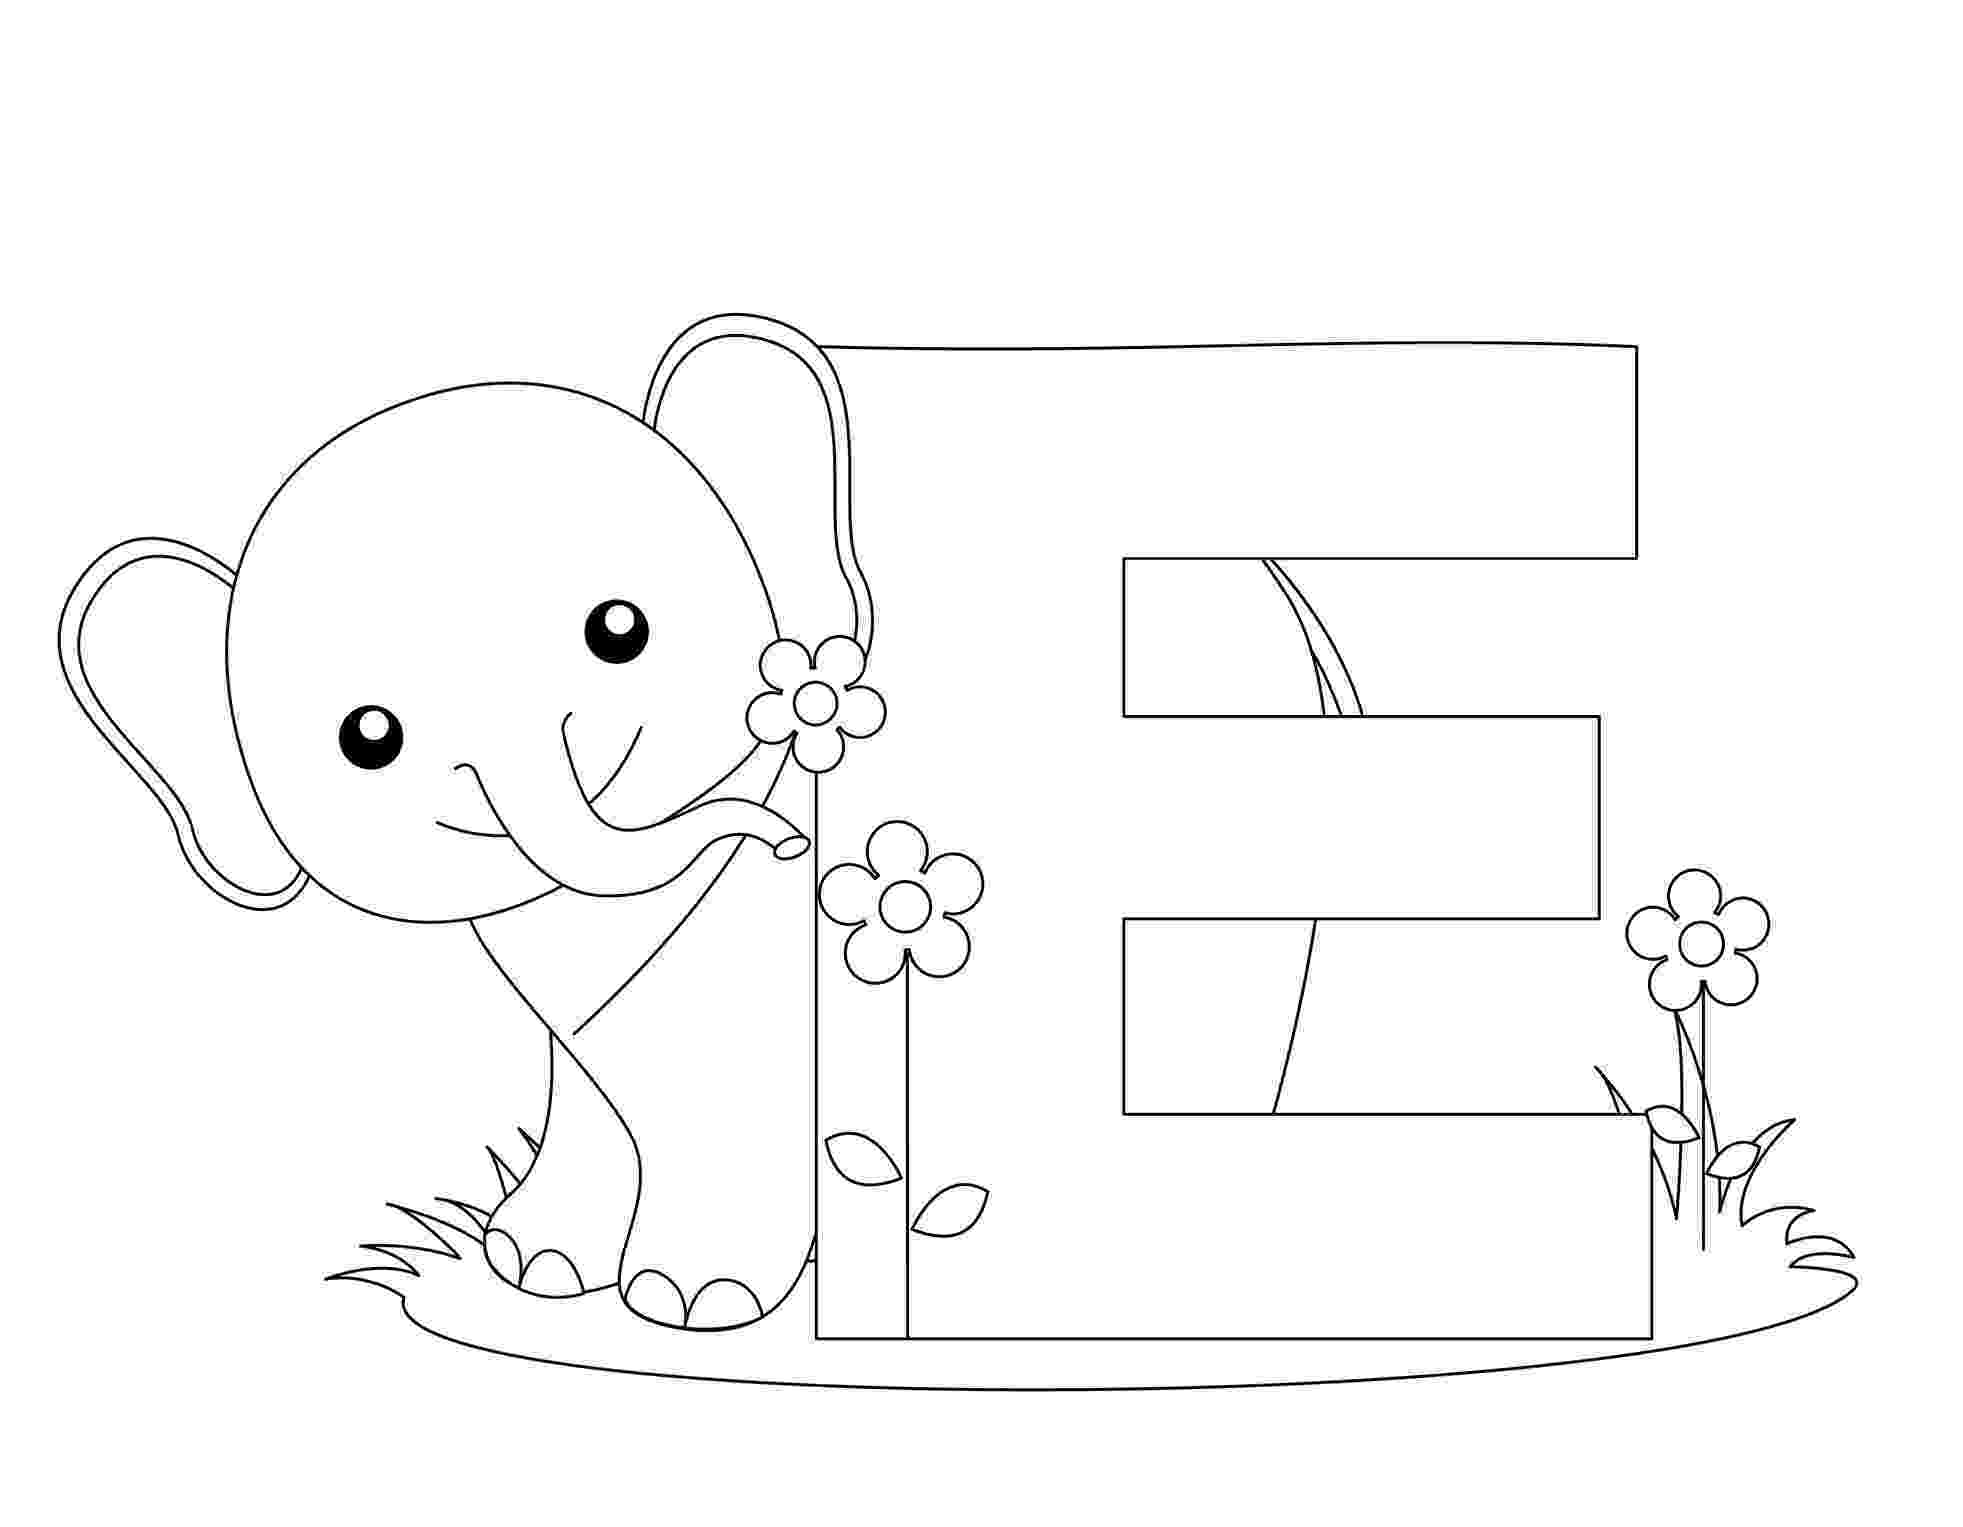 coloring pages of letters free printable alphabet coloring pages for kids best letters coloring pages of